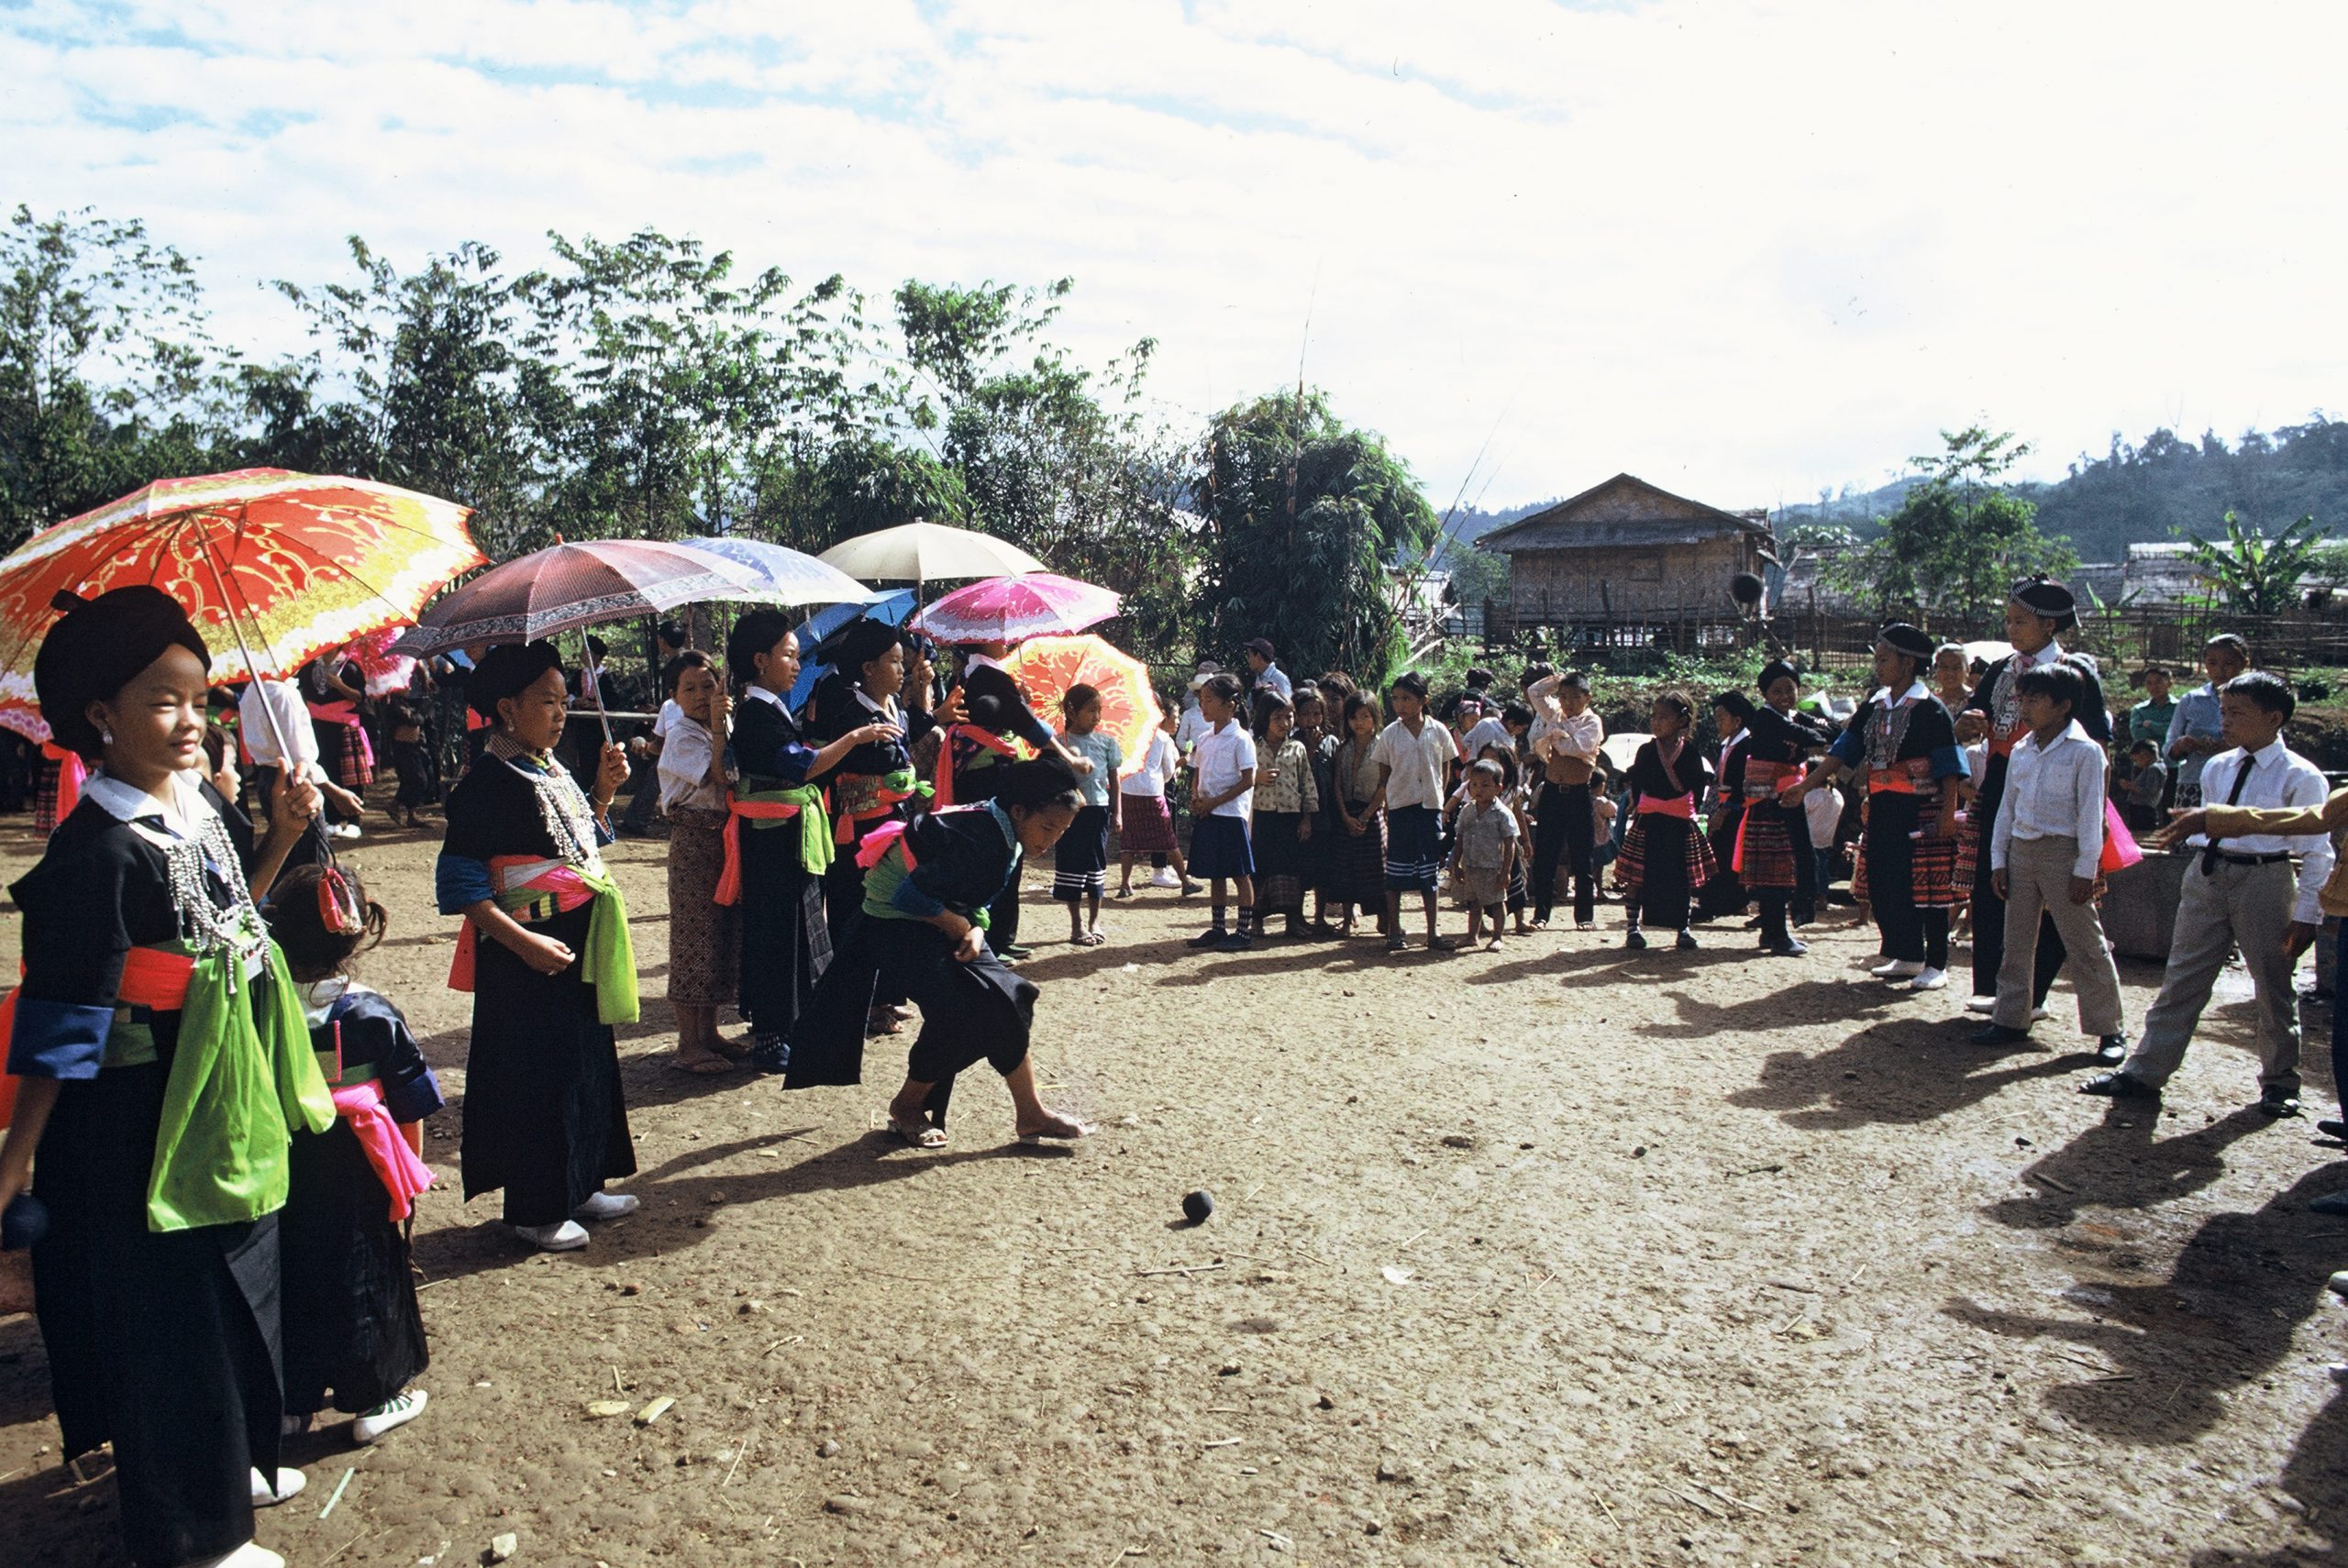 A game of pov pob played for Hmong New Year in Laos